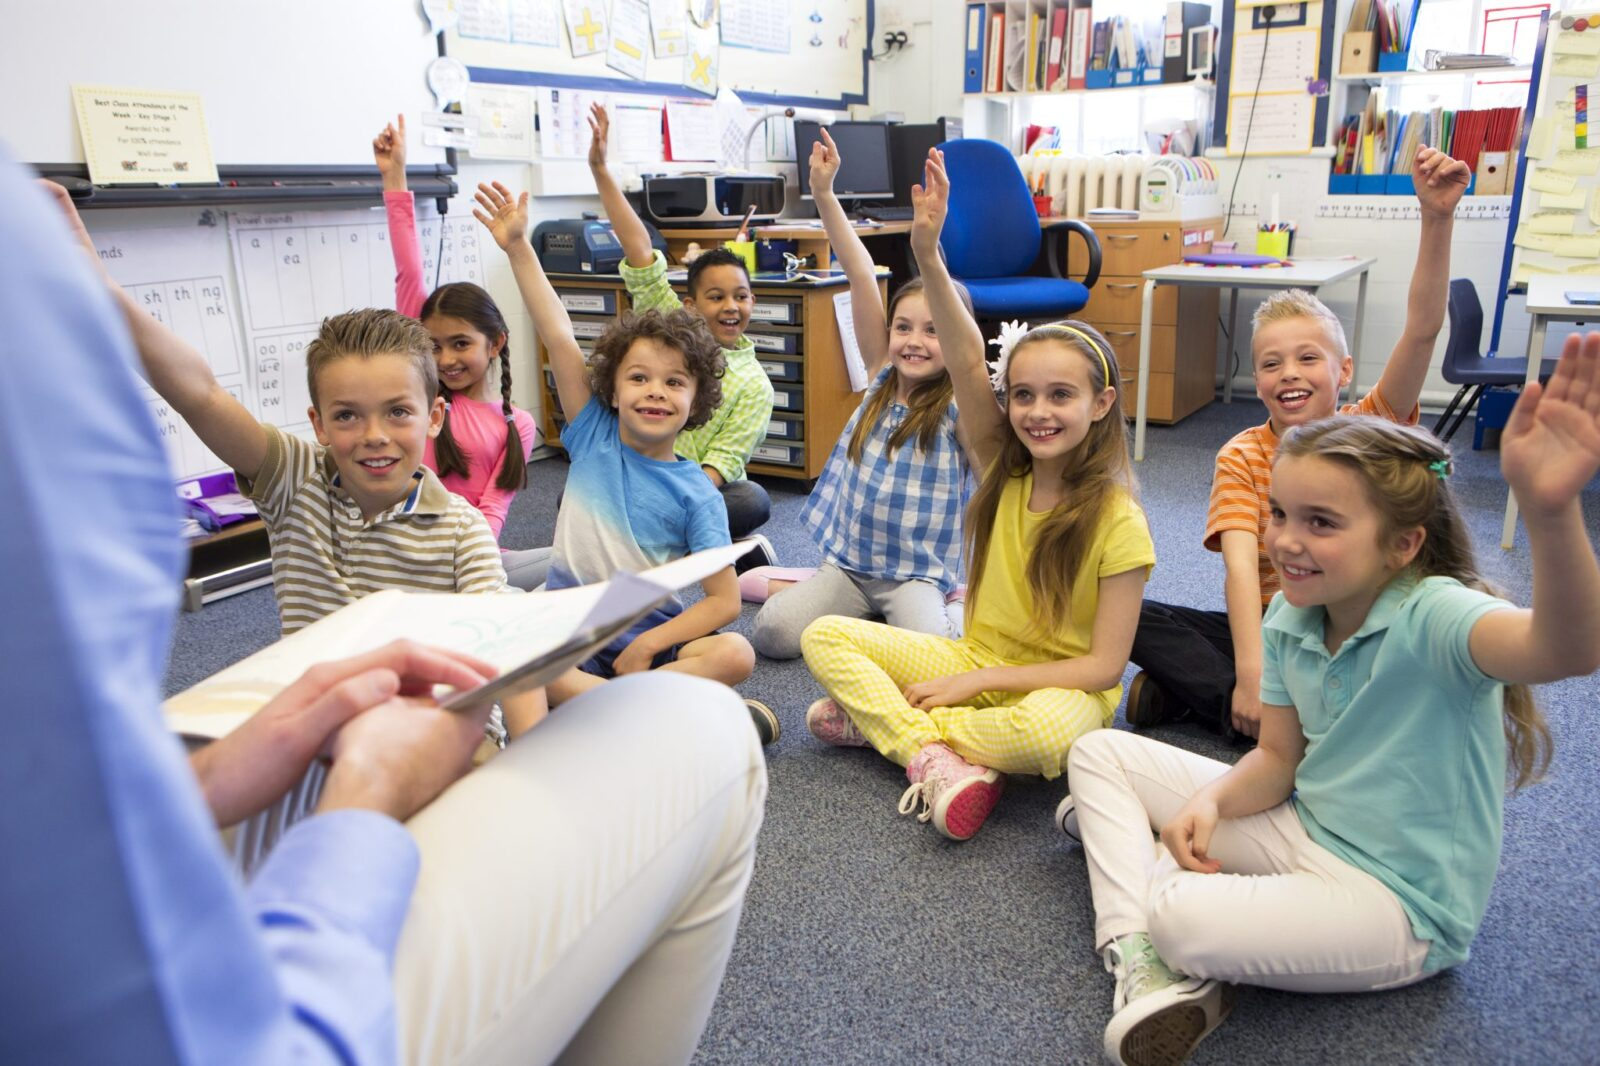 Teaching Listening Skills In The Classroom